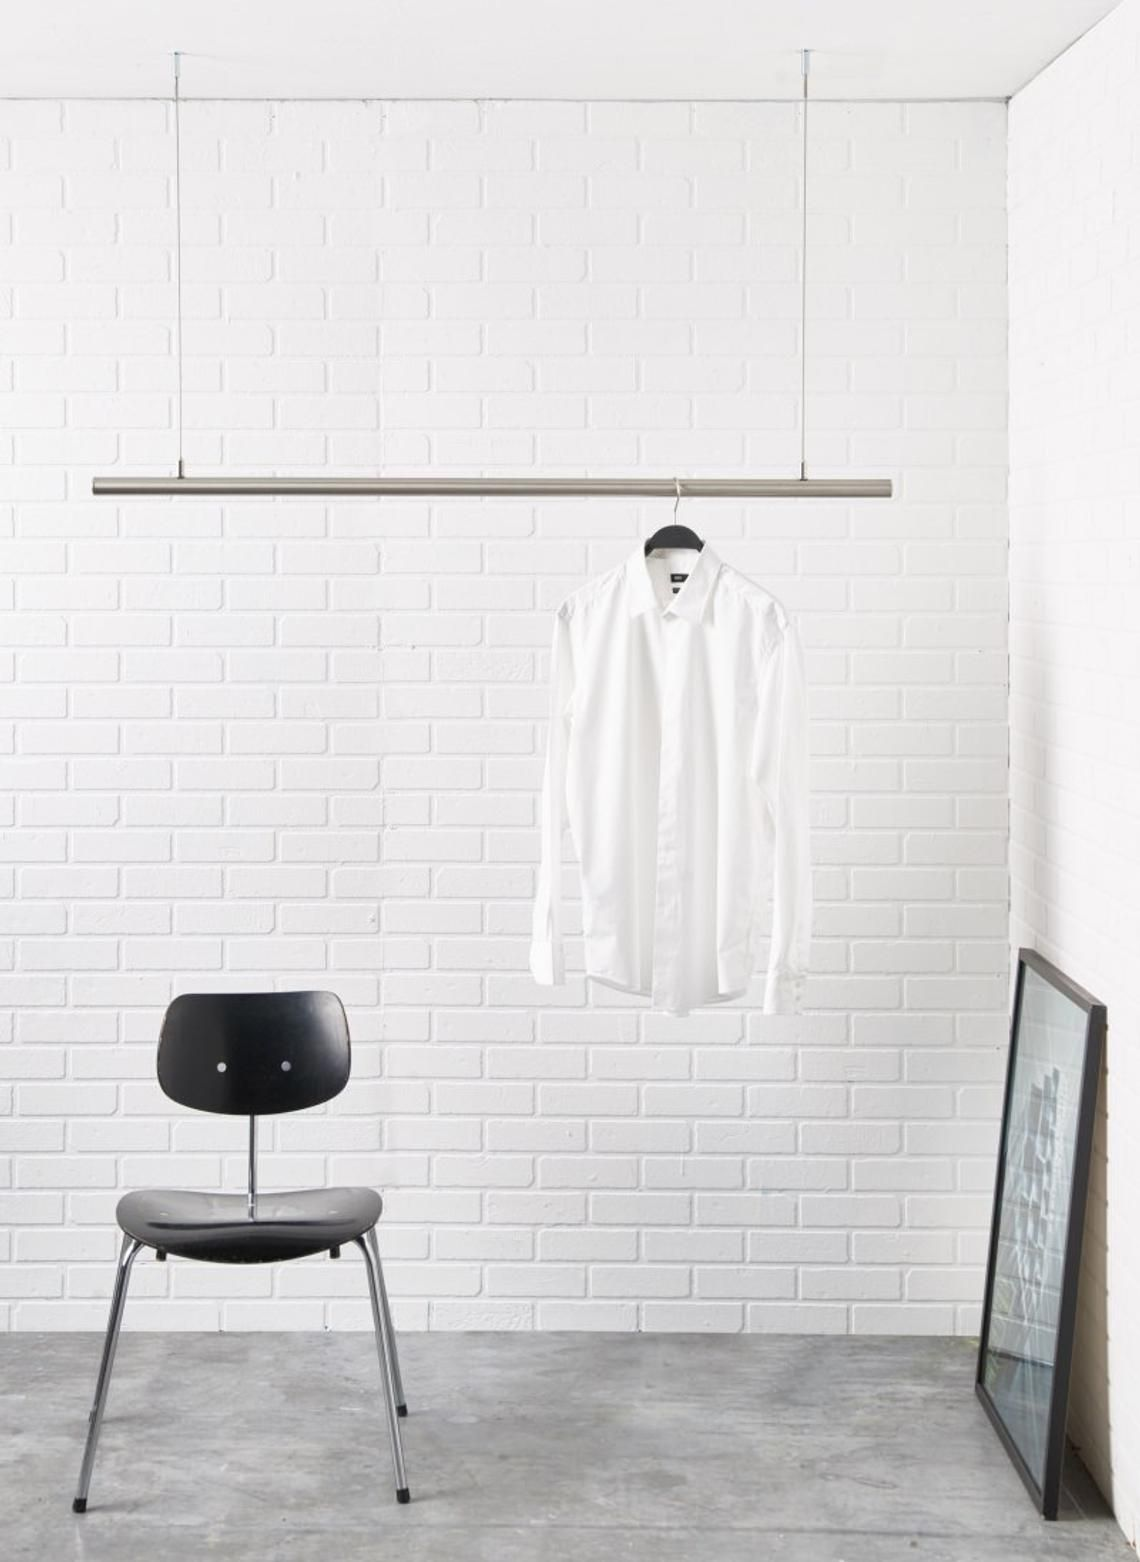 Airjust Solo Hanging Cloth Rack Ceiling Mounted Hight Adjustable Stainless Steel Width From 80 Cm In 2020 Hanging Clothes Racks Hanging Clothes Clothes Rail